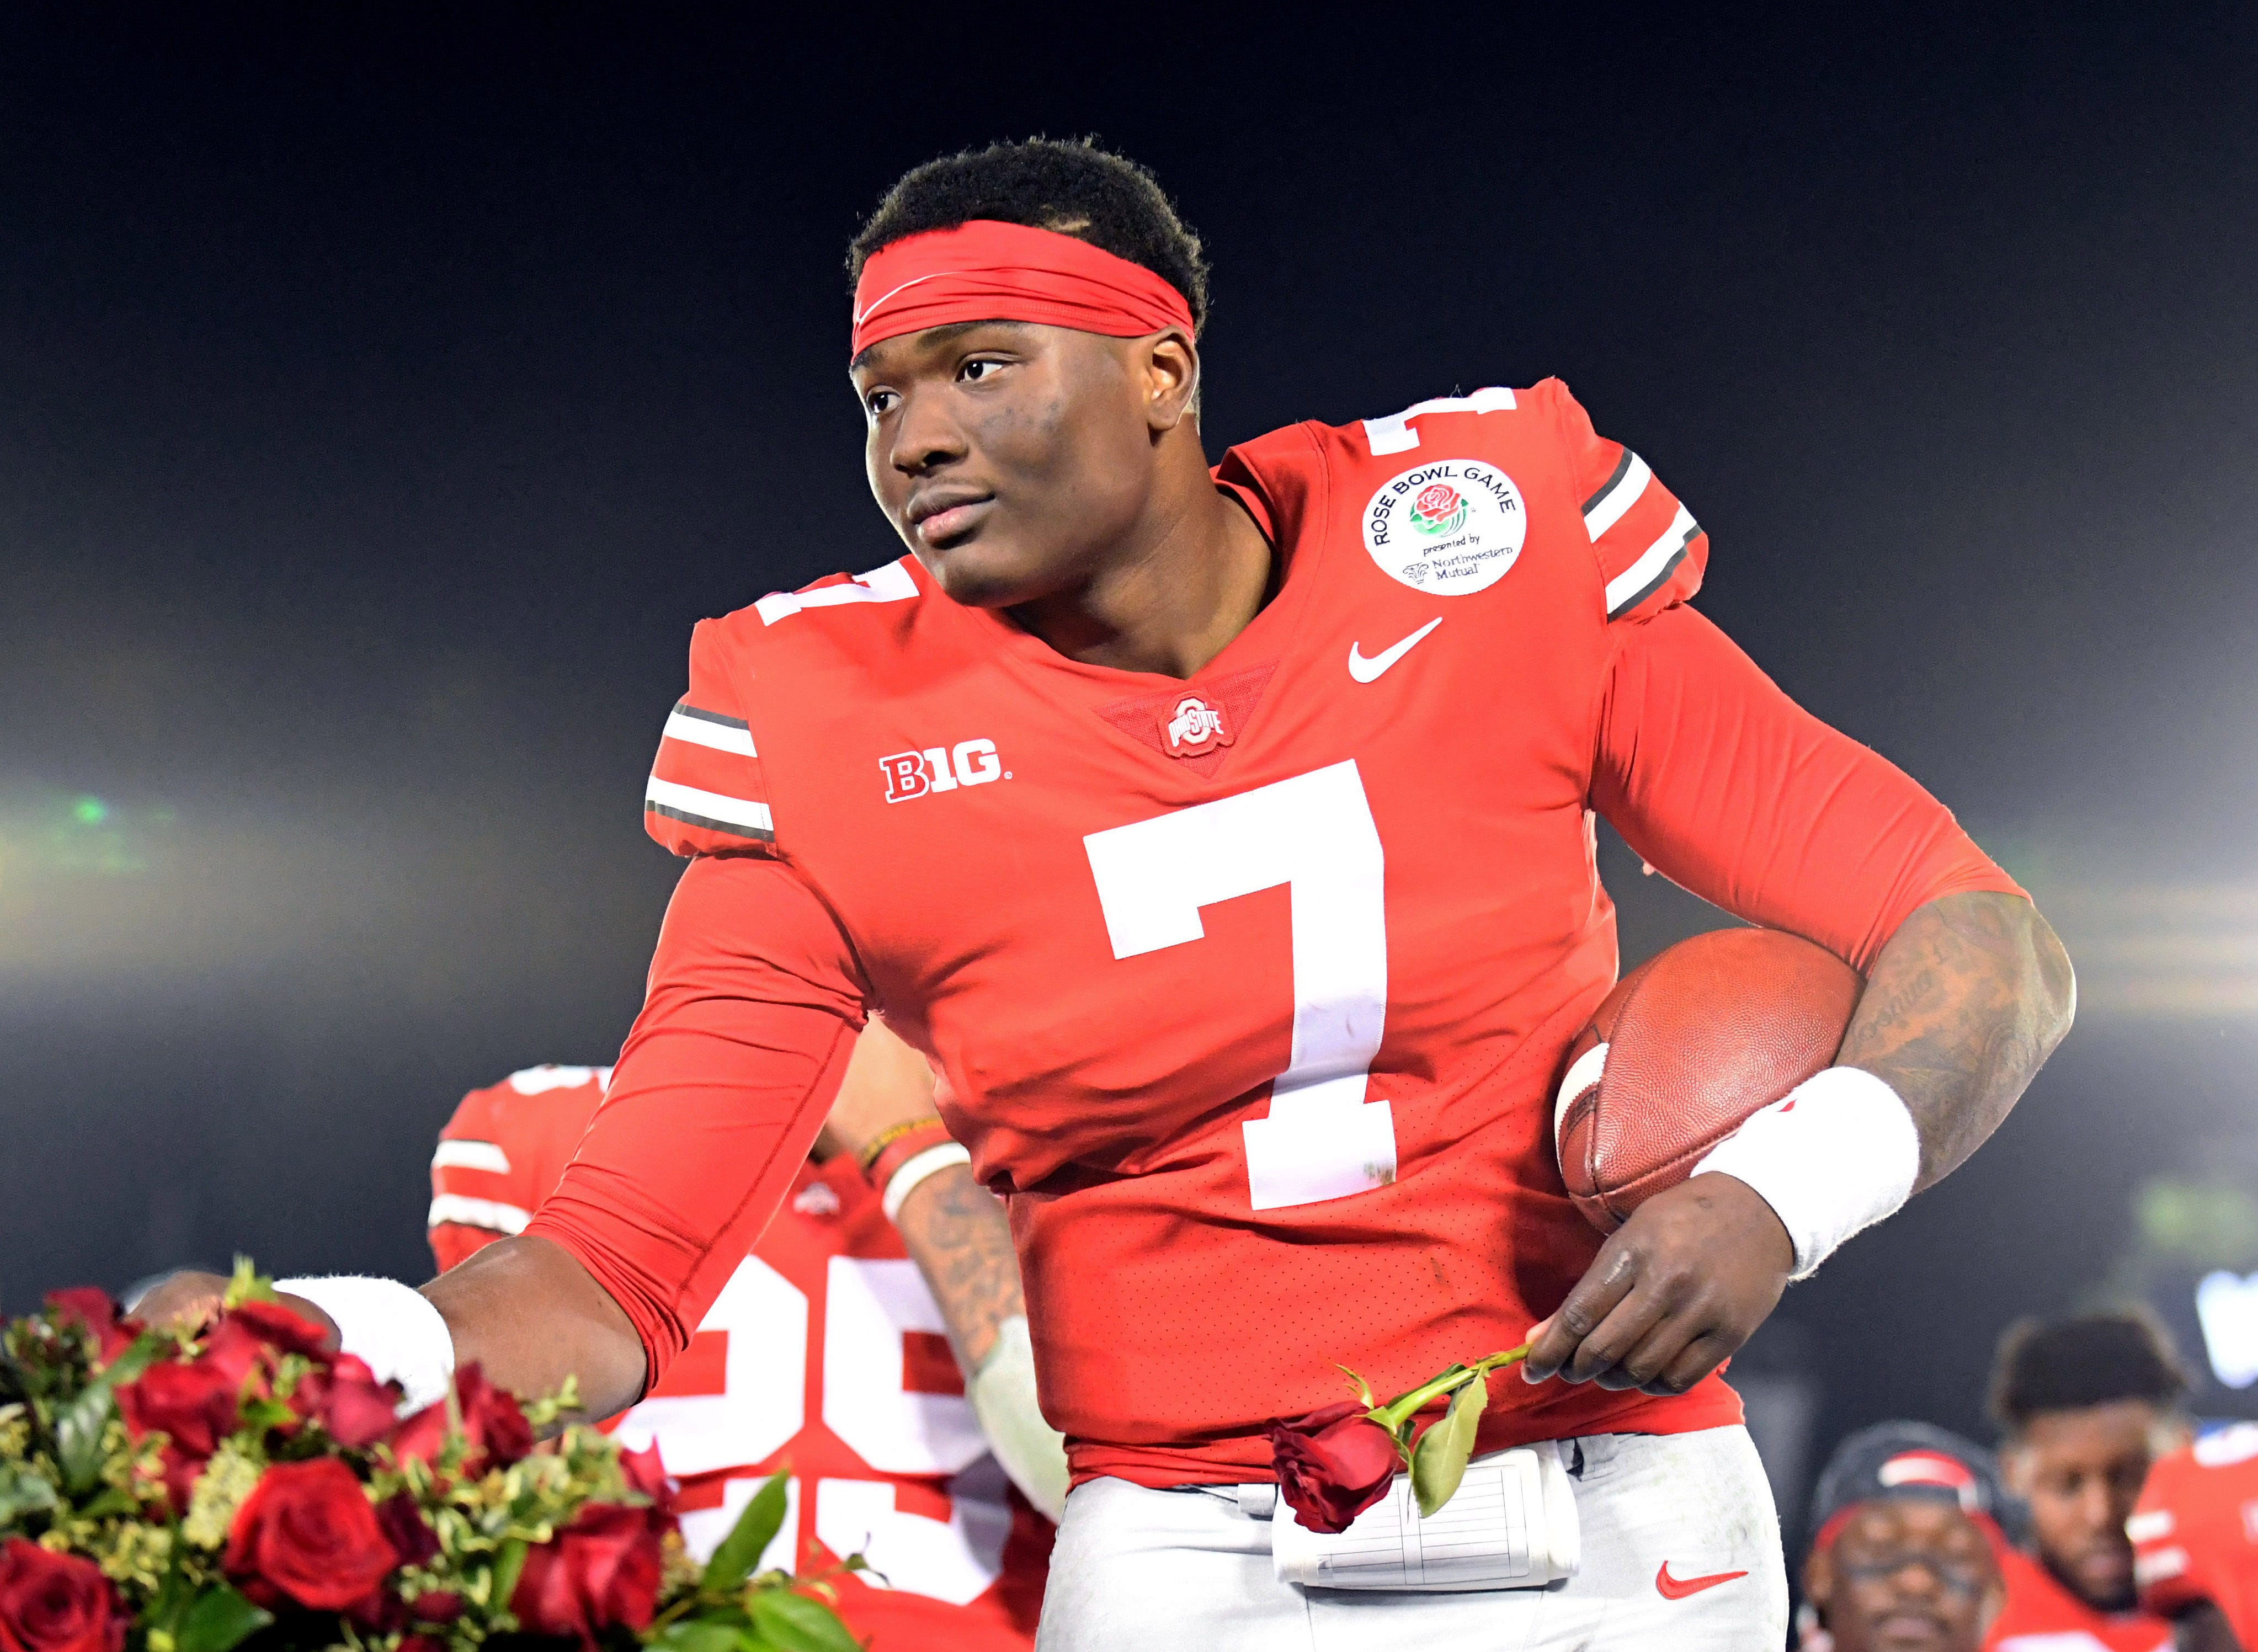 Opinion: Ohio State QB Dwayne Haskins keeps his cool, tunes out talk of slide in NFL draft